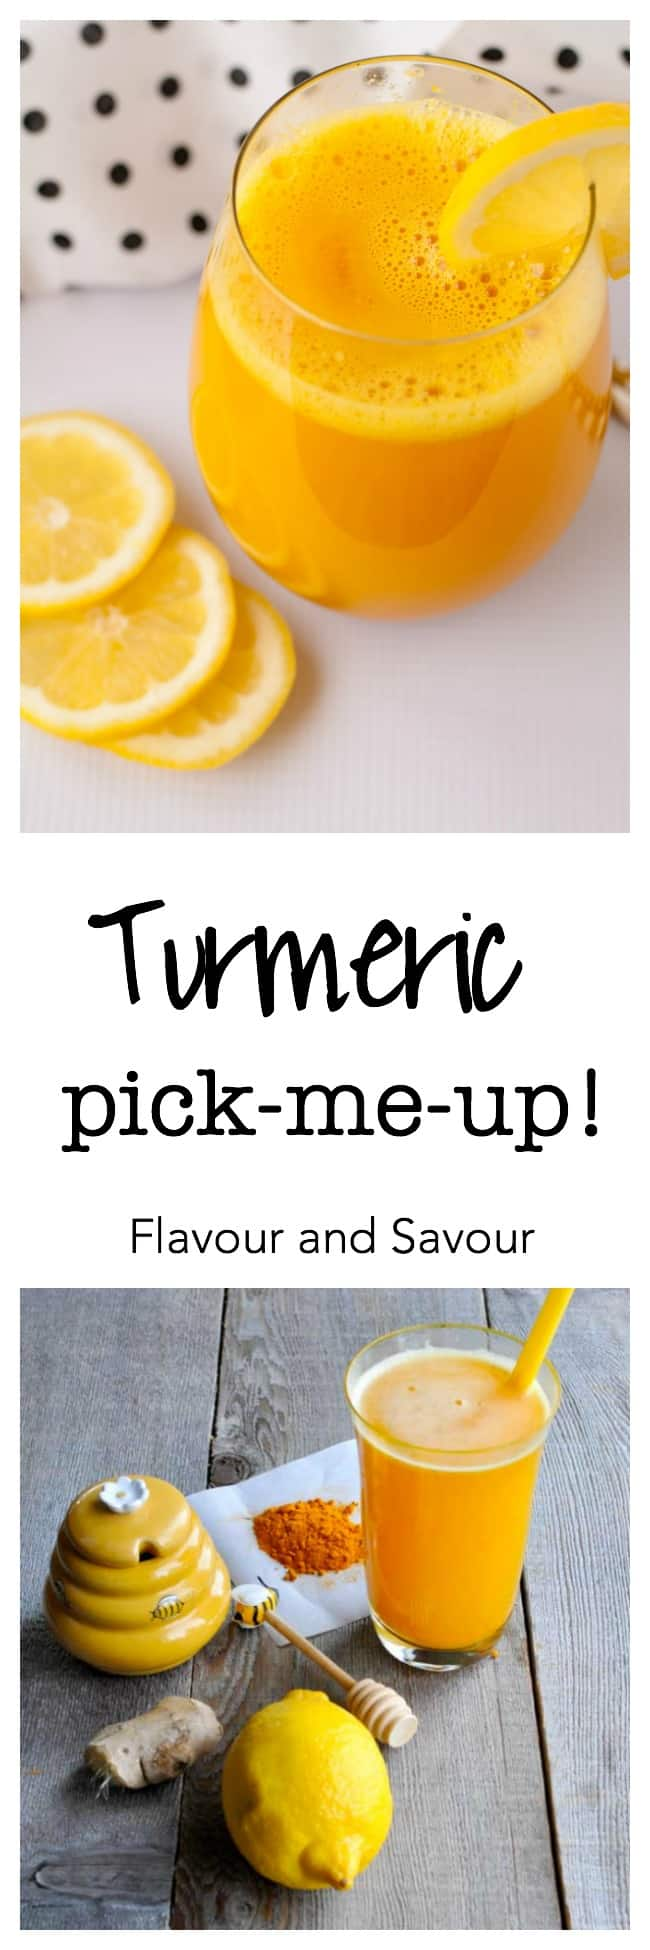 Get the easy recipe for this turmeric, lemon and honey drink that actually tastes delicious! This powerful anti-inflammatory, anti-oxidant Turmeric Pick-Me-up juice also gives you a boost of energy.#turmeric #tonic #lemon #honey #antiinflammatory #antioxidant